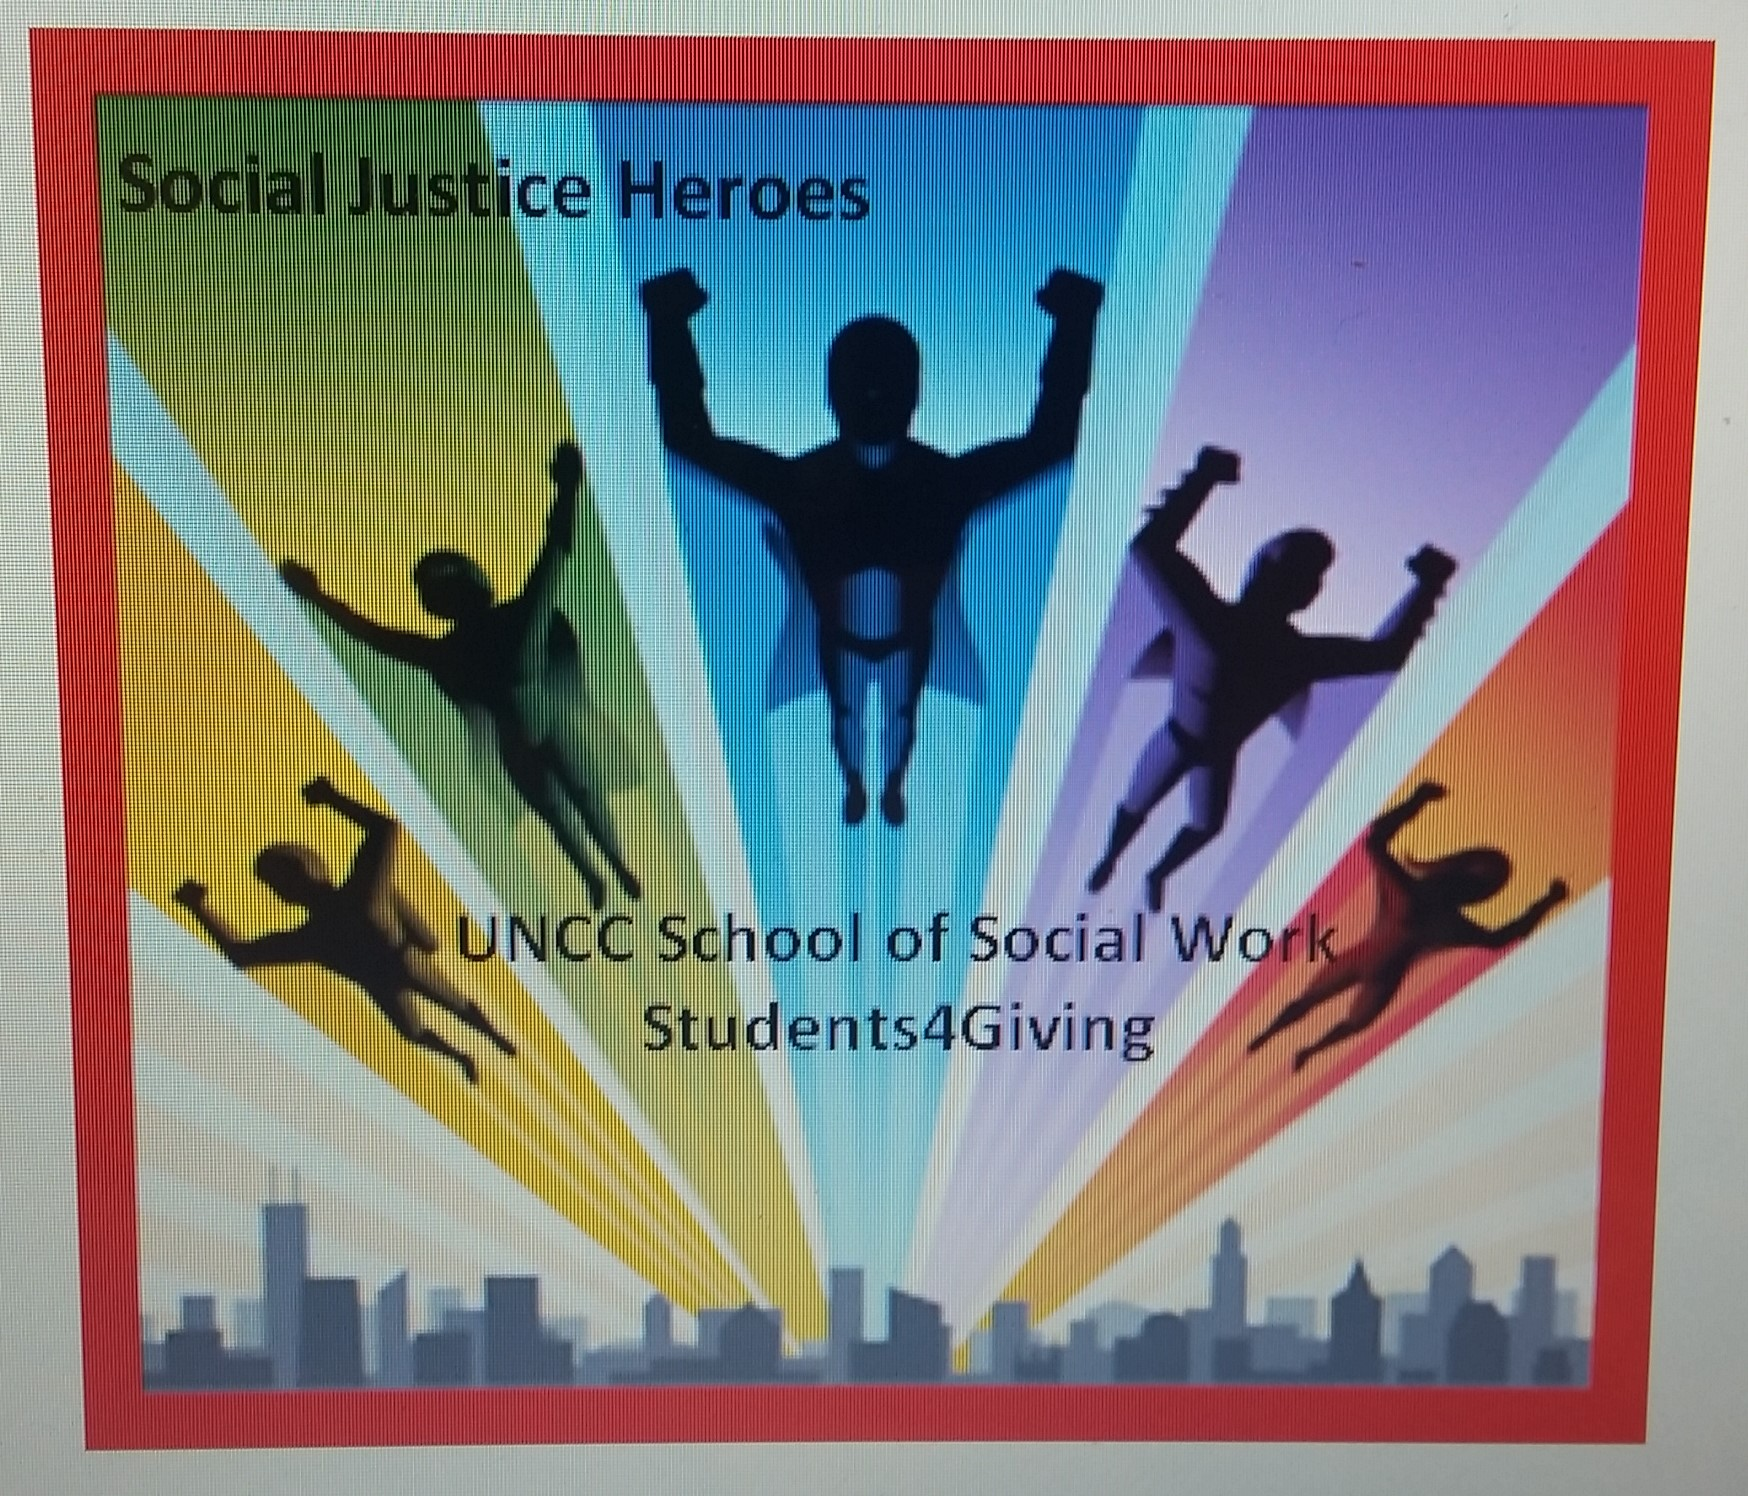 images.raceentry.com/infopages/social-justice-heroes-running-for-students4giving-infopages-985.jpg